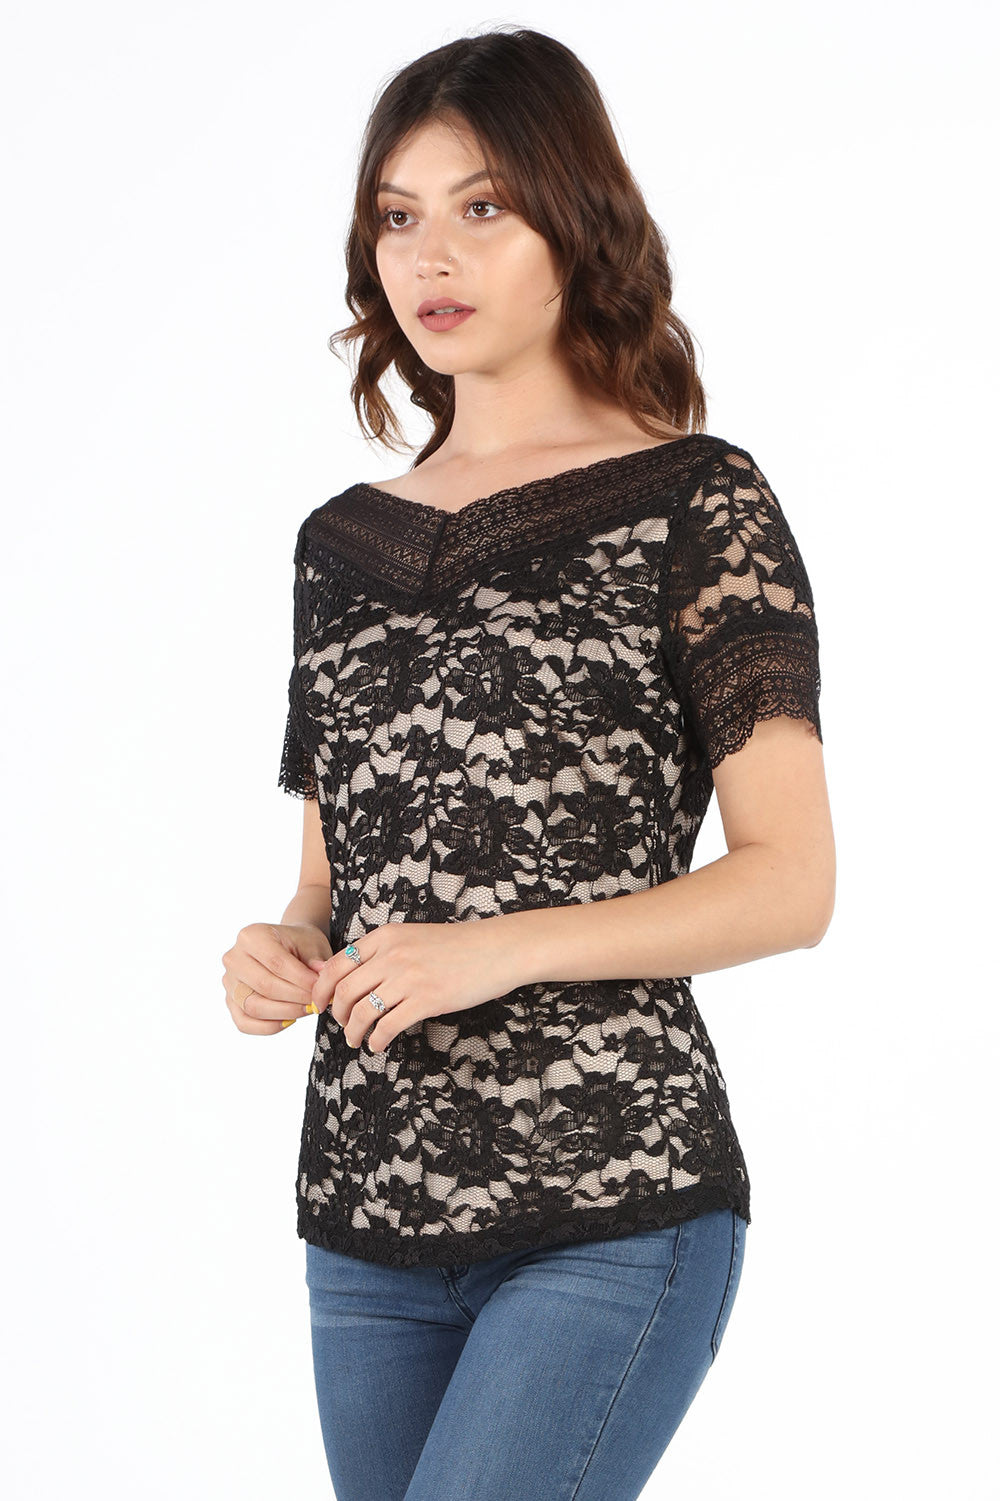 SB327-SS Black Stretch Lace Blouse